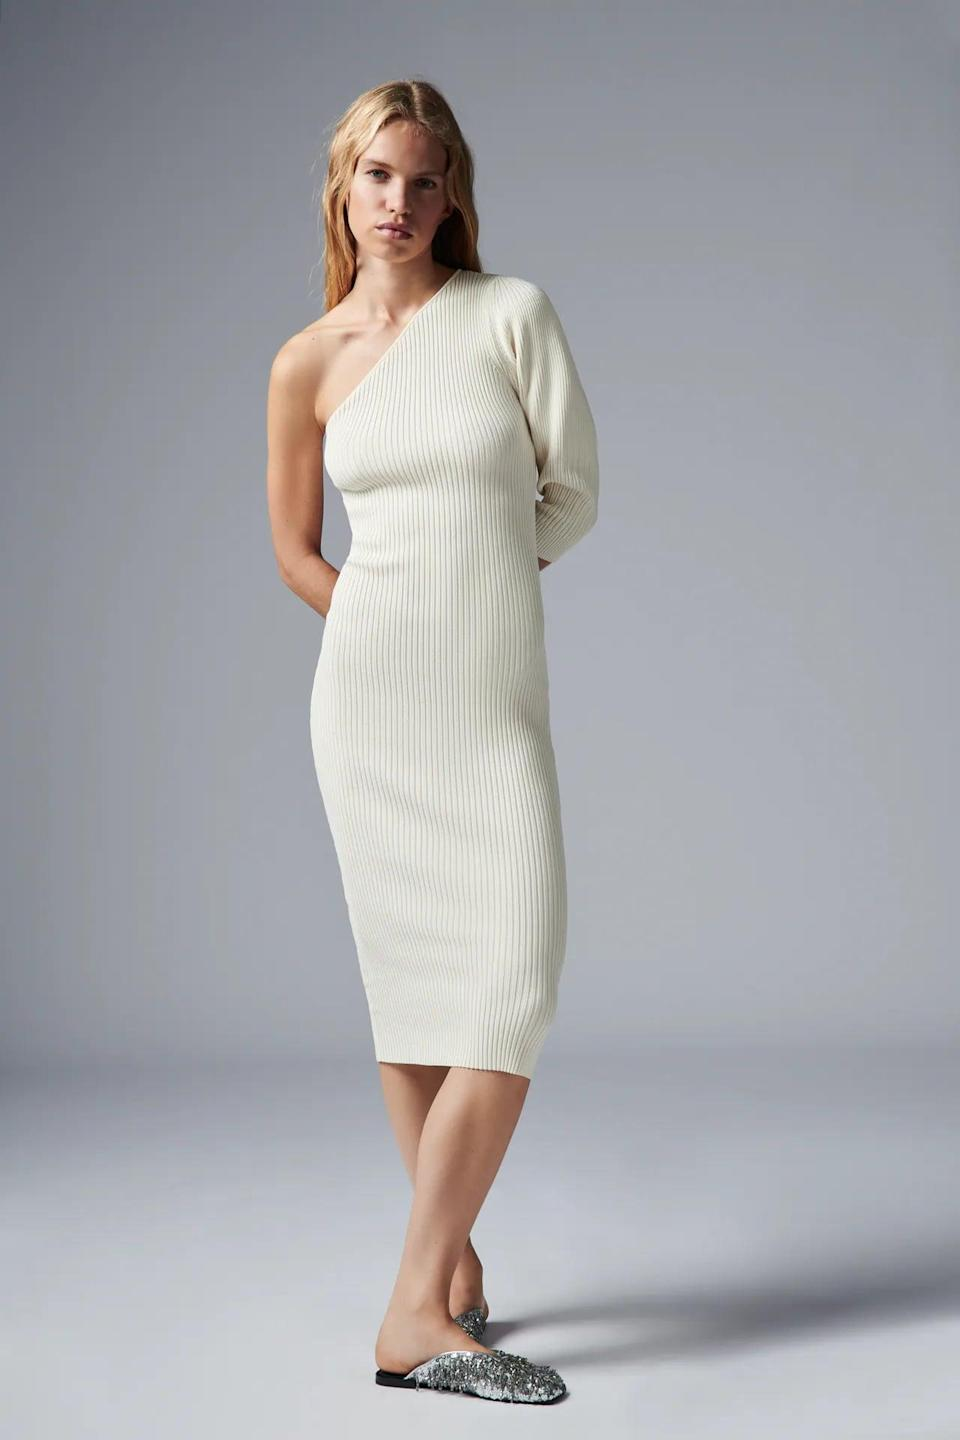 <p>Pair this <span>Zara Asymmetric Knit Dress</span> ($50) with flats or booties. We're into the one shouldered look.</p>